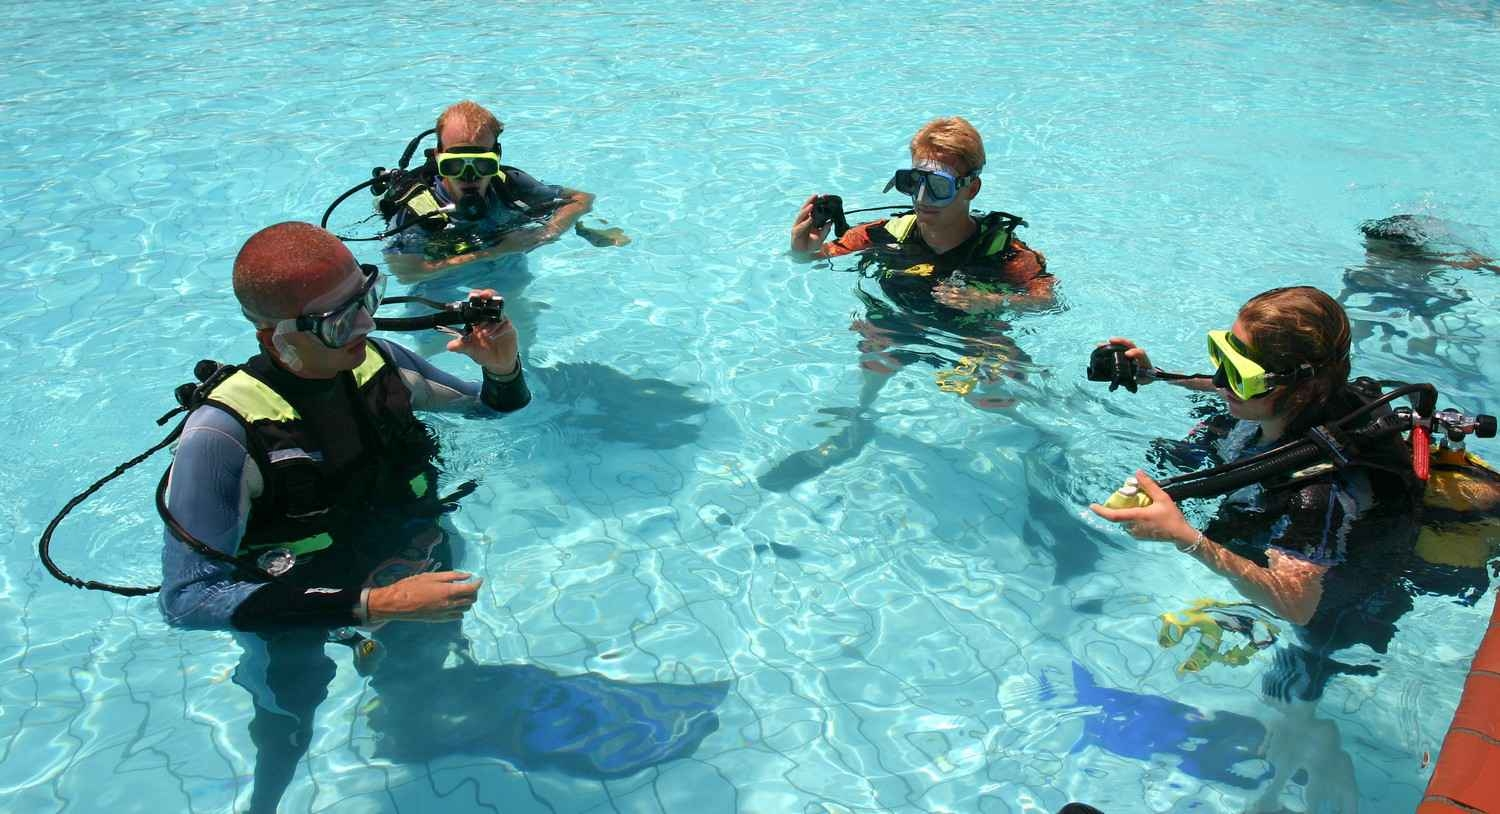 A scuba diving instructor working with three students in a swimming pool.